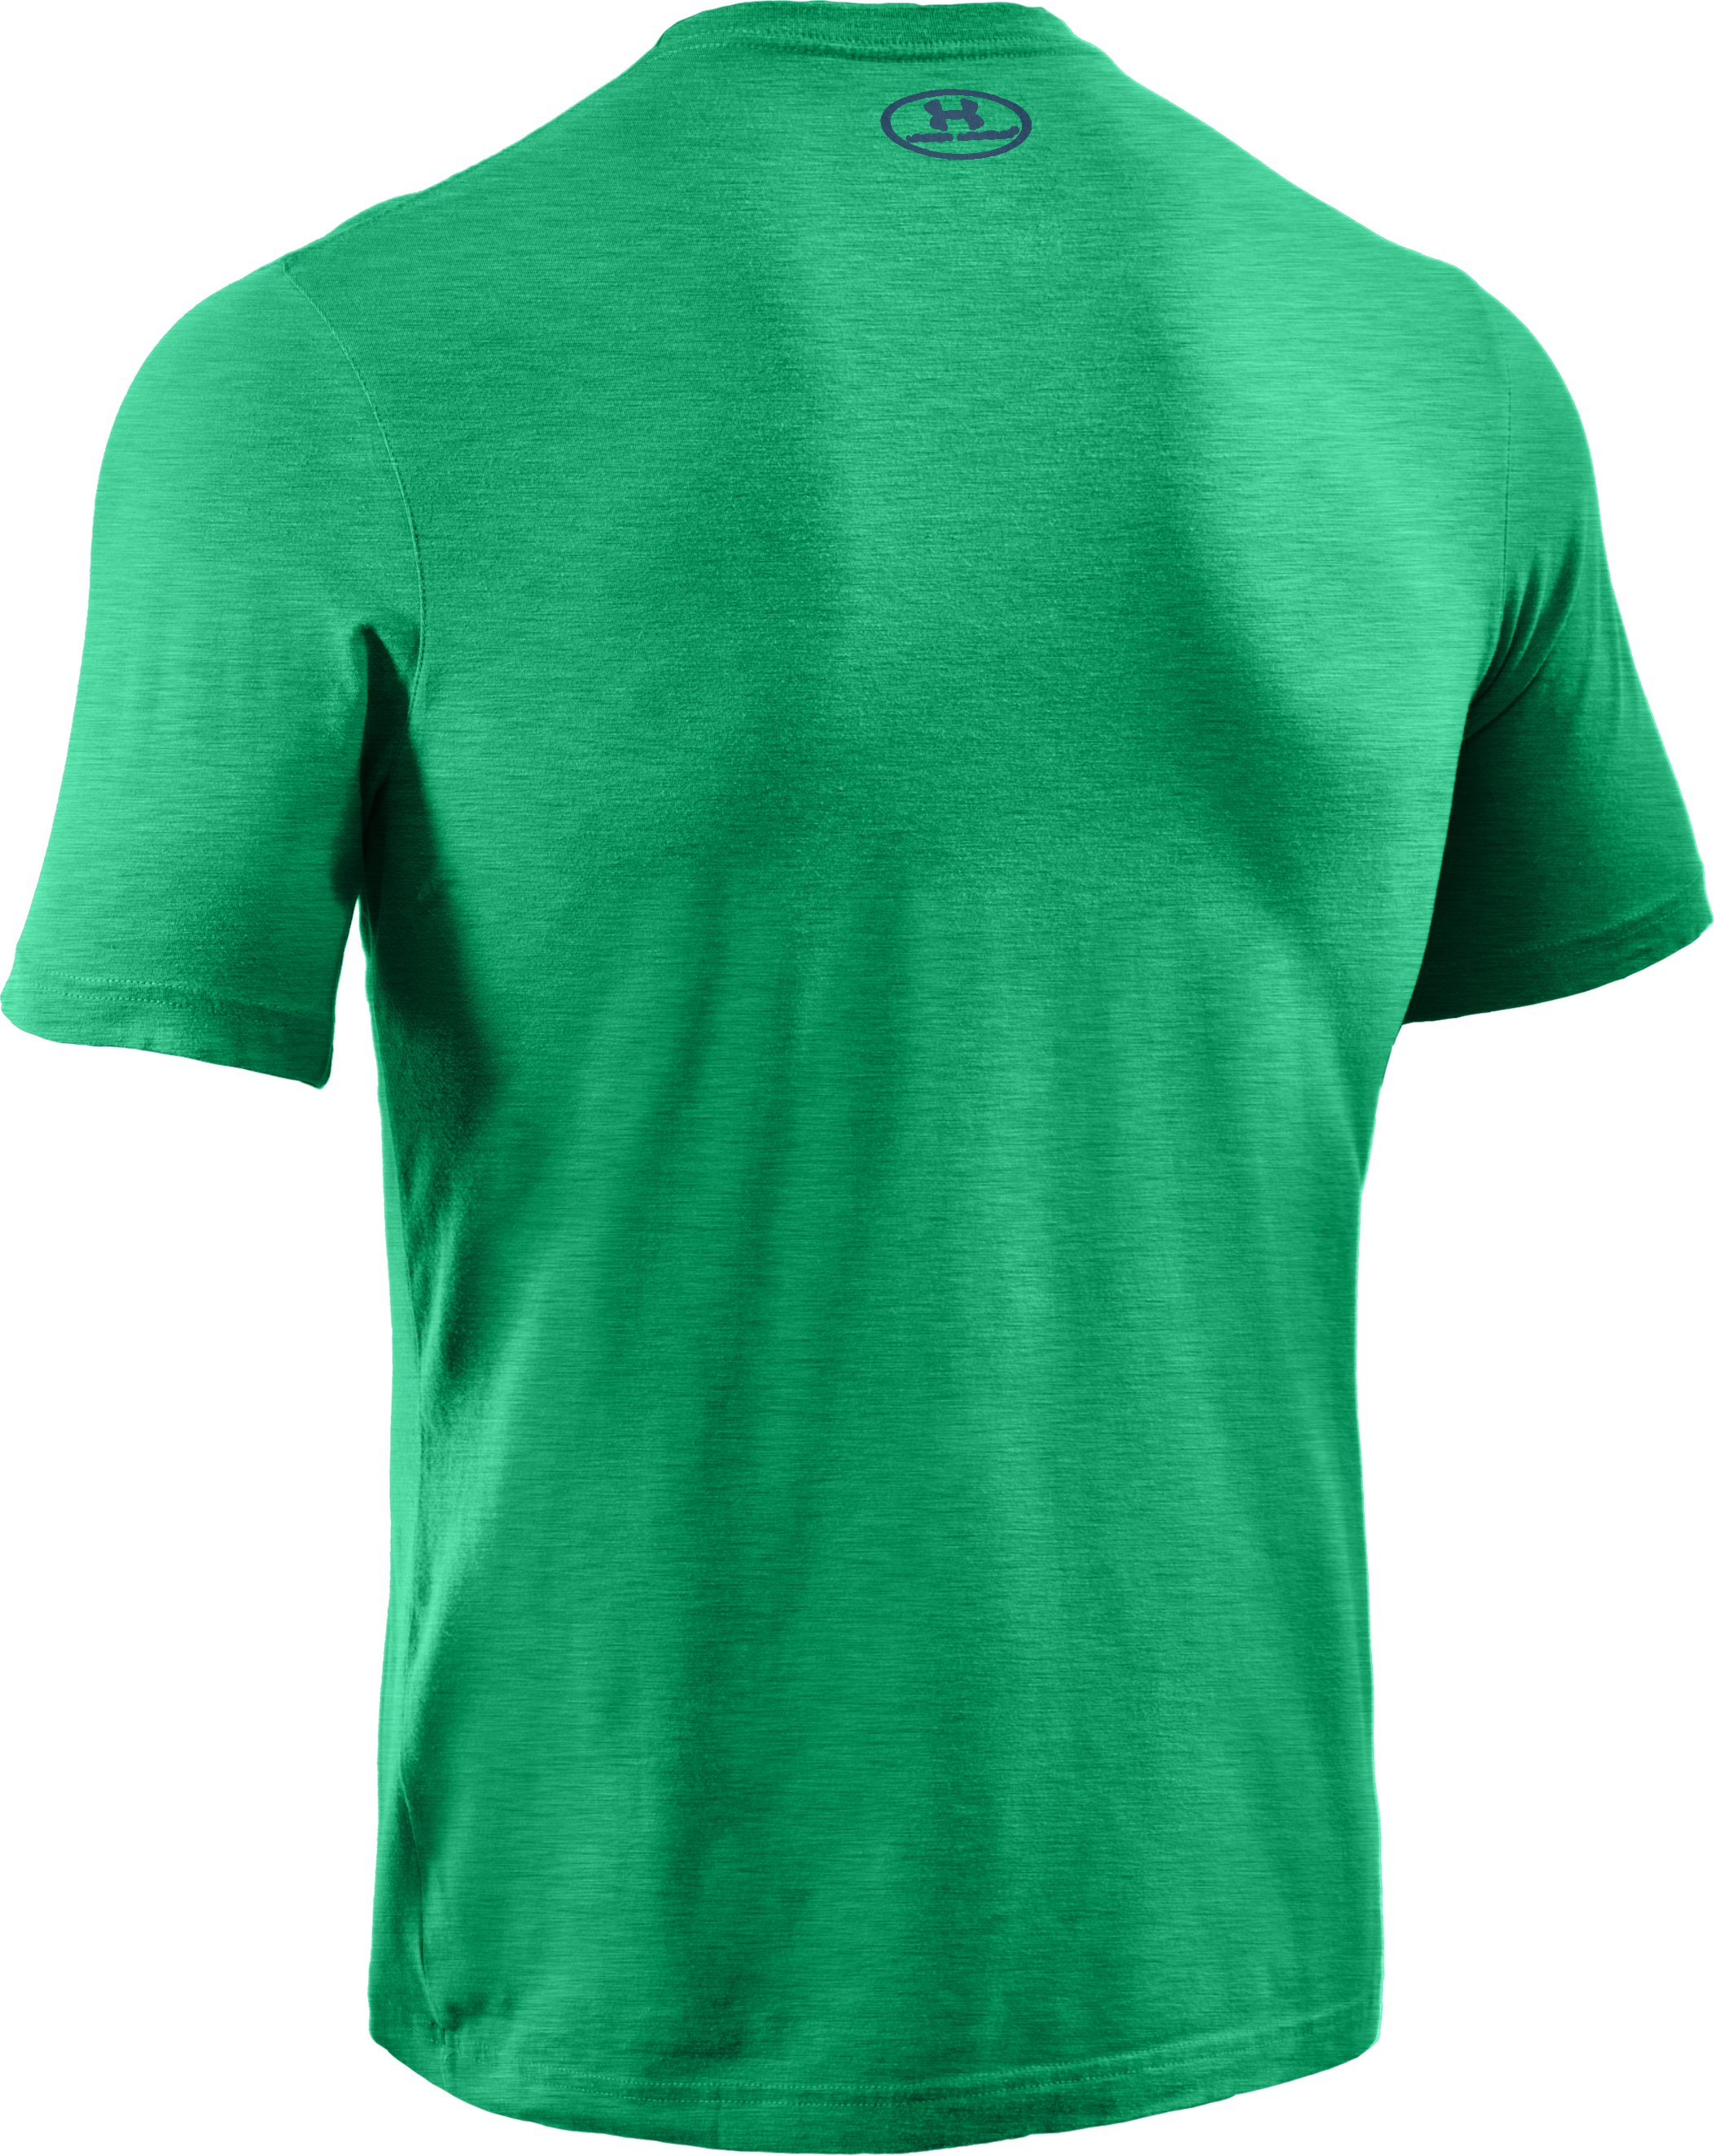 Men's Charged Cotton® T-Shirt, ASTRO GREEN